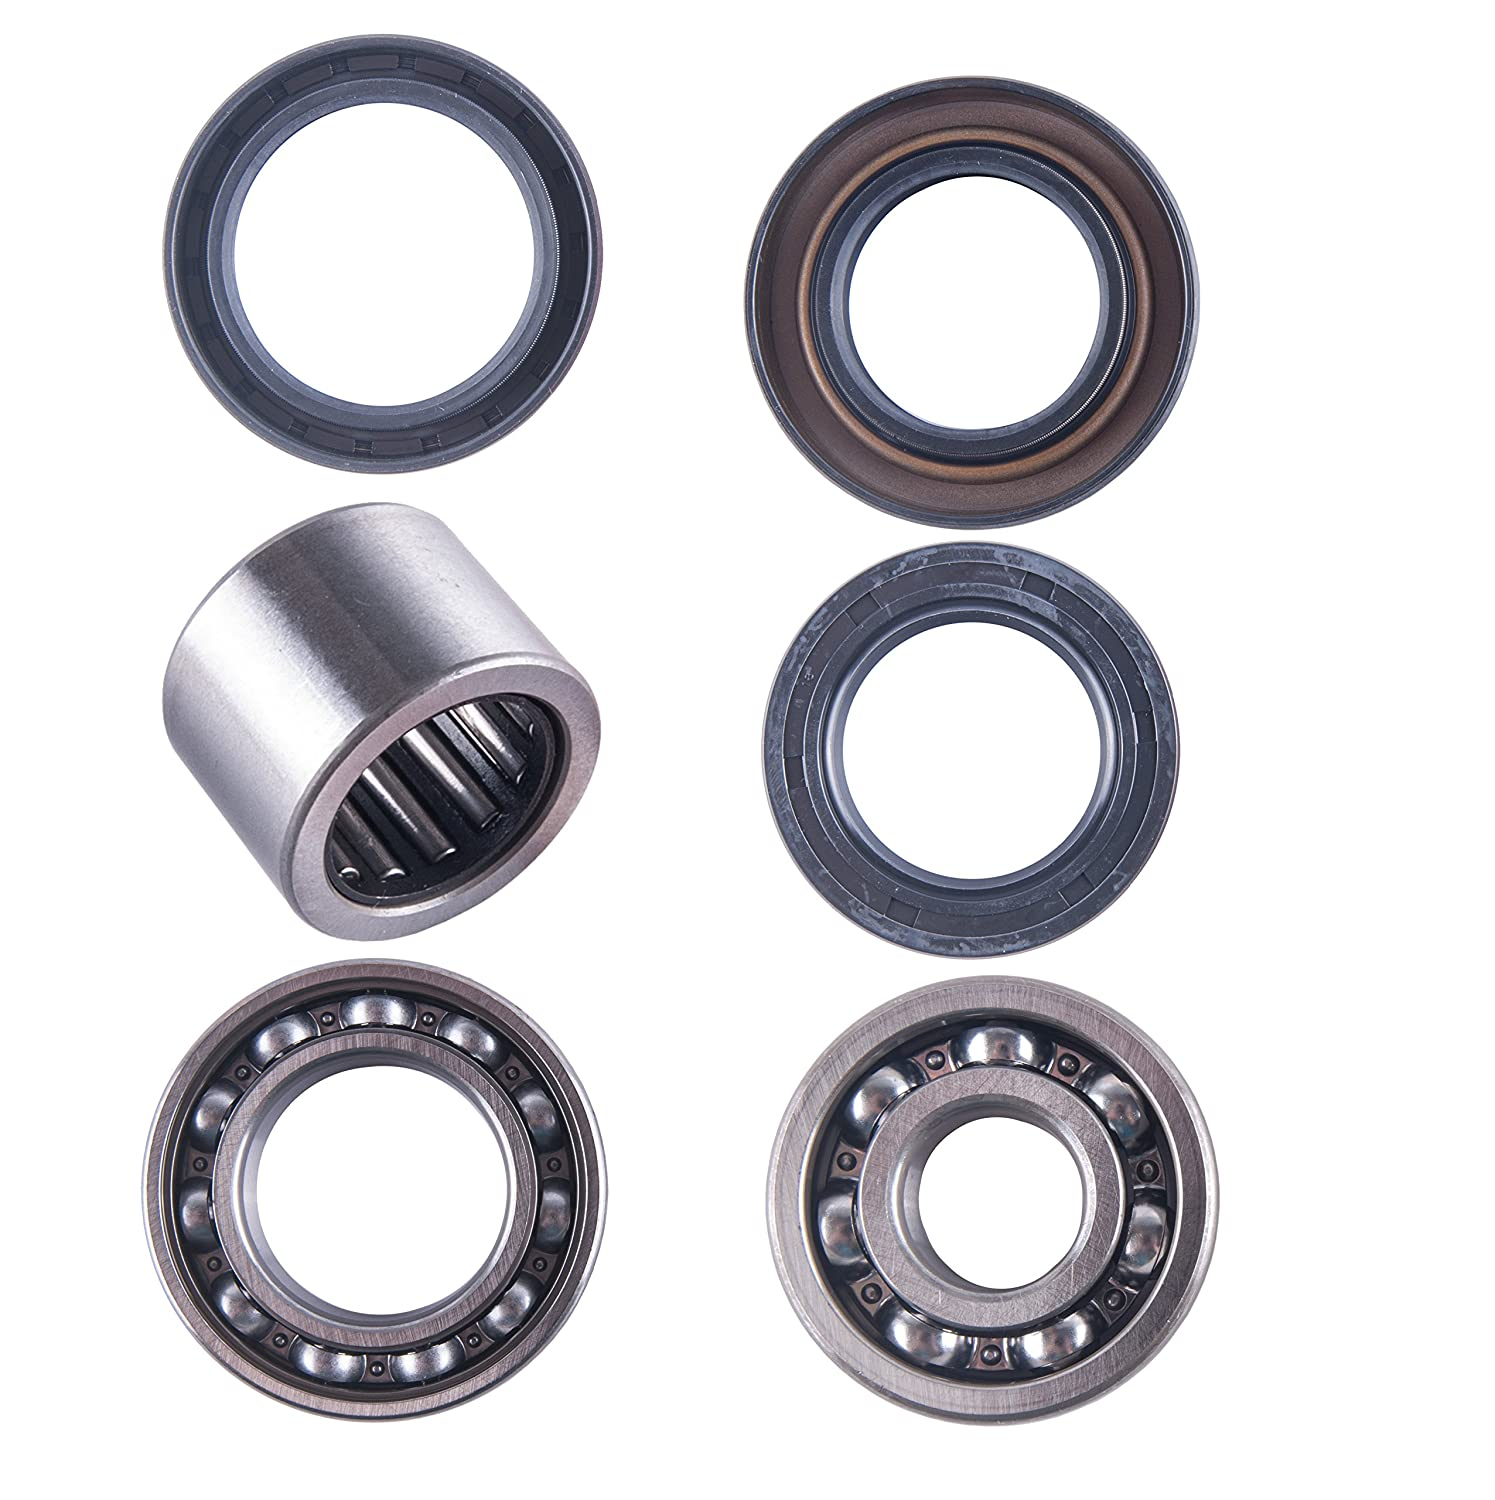 East Lake Axle Rear differential bearing /& seal kit compatible with Honda TRX//ATC 250R 250SX 1985 1986 1987